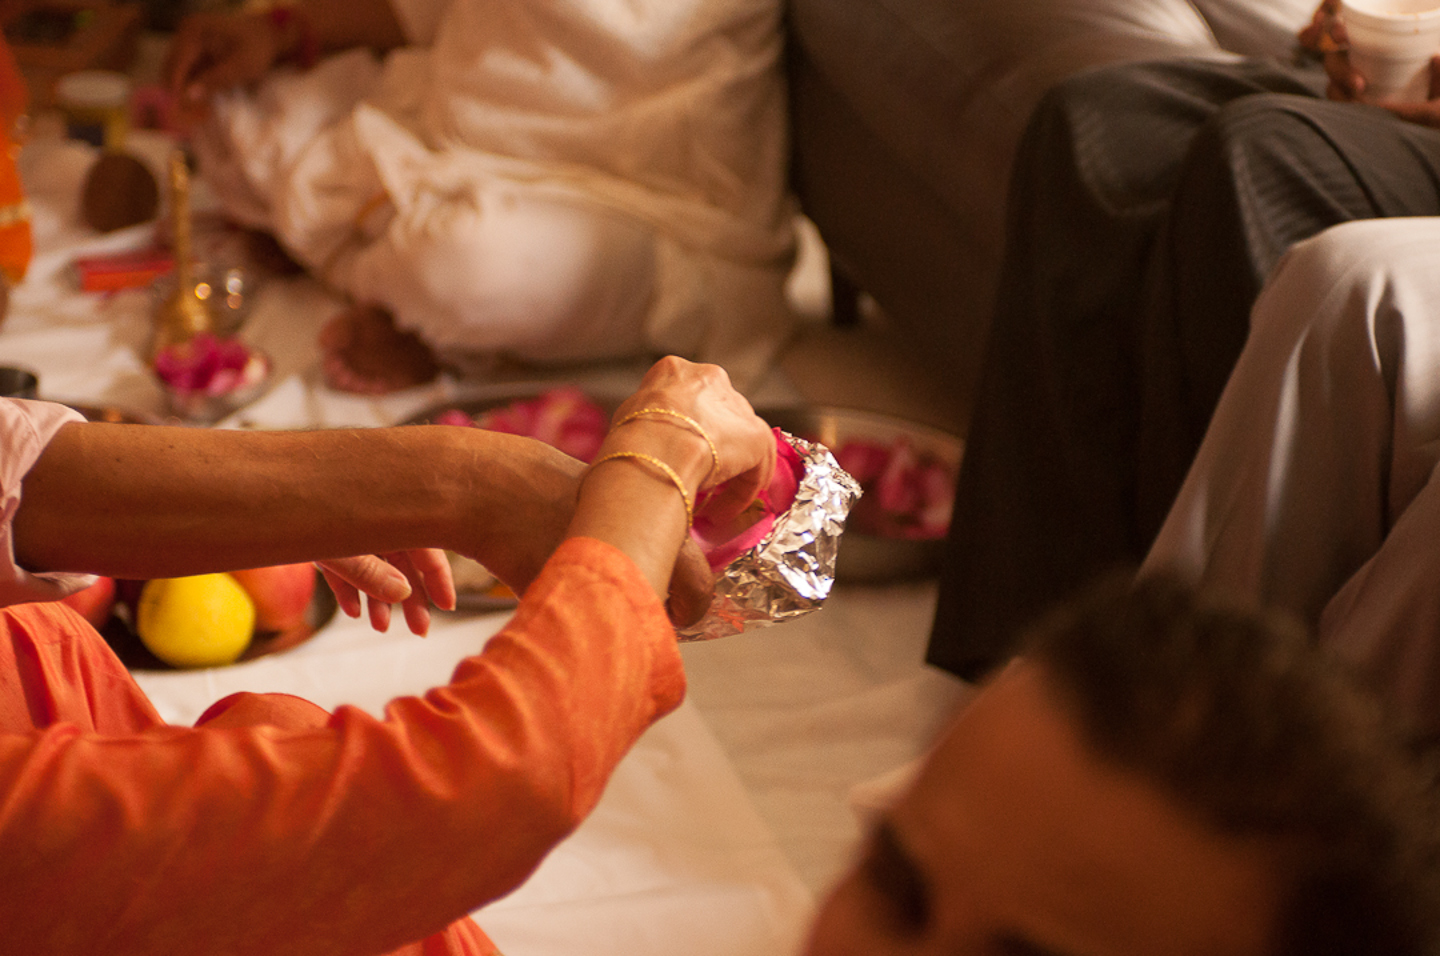 mithun-first-birthday-party-event-photography-long-island-ny-first-birthday-0029.jpg